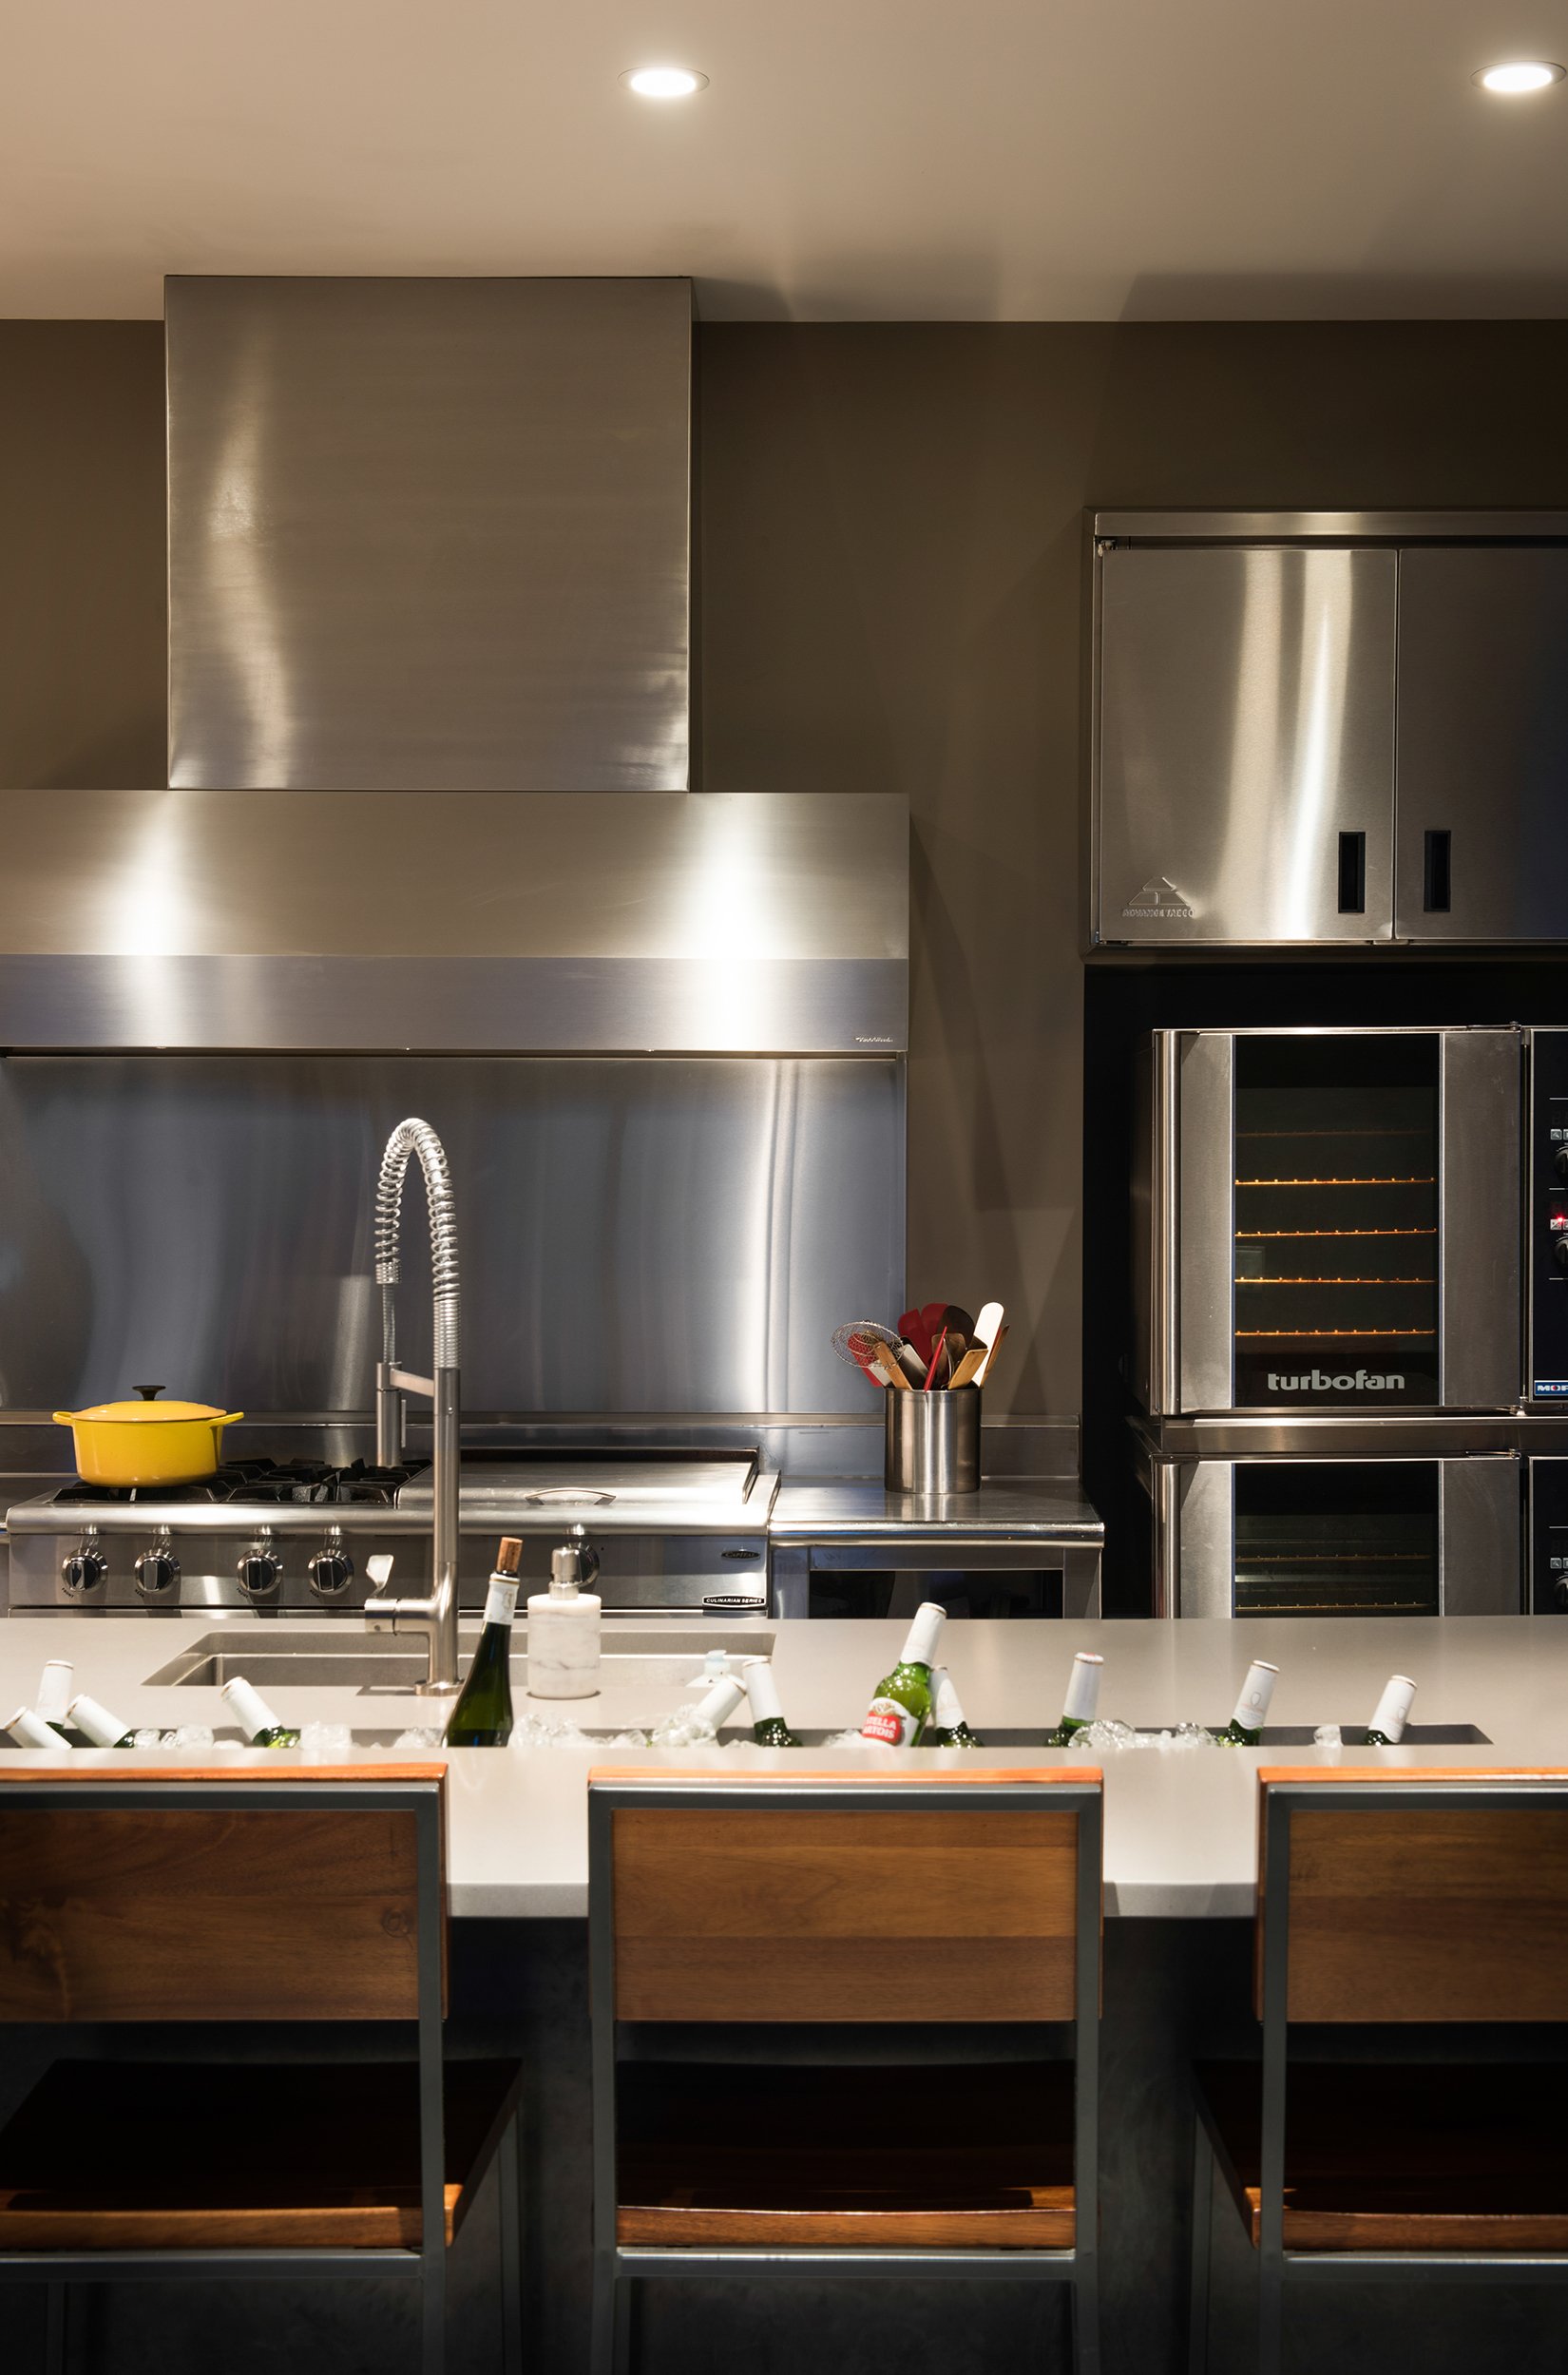 This kitchen in AMAZING! The ice basin built into the counter was a very nice touch.